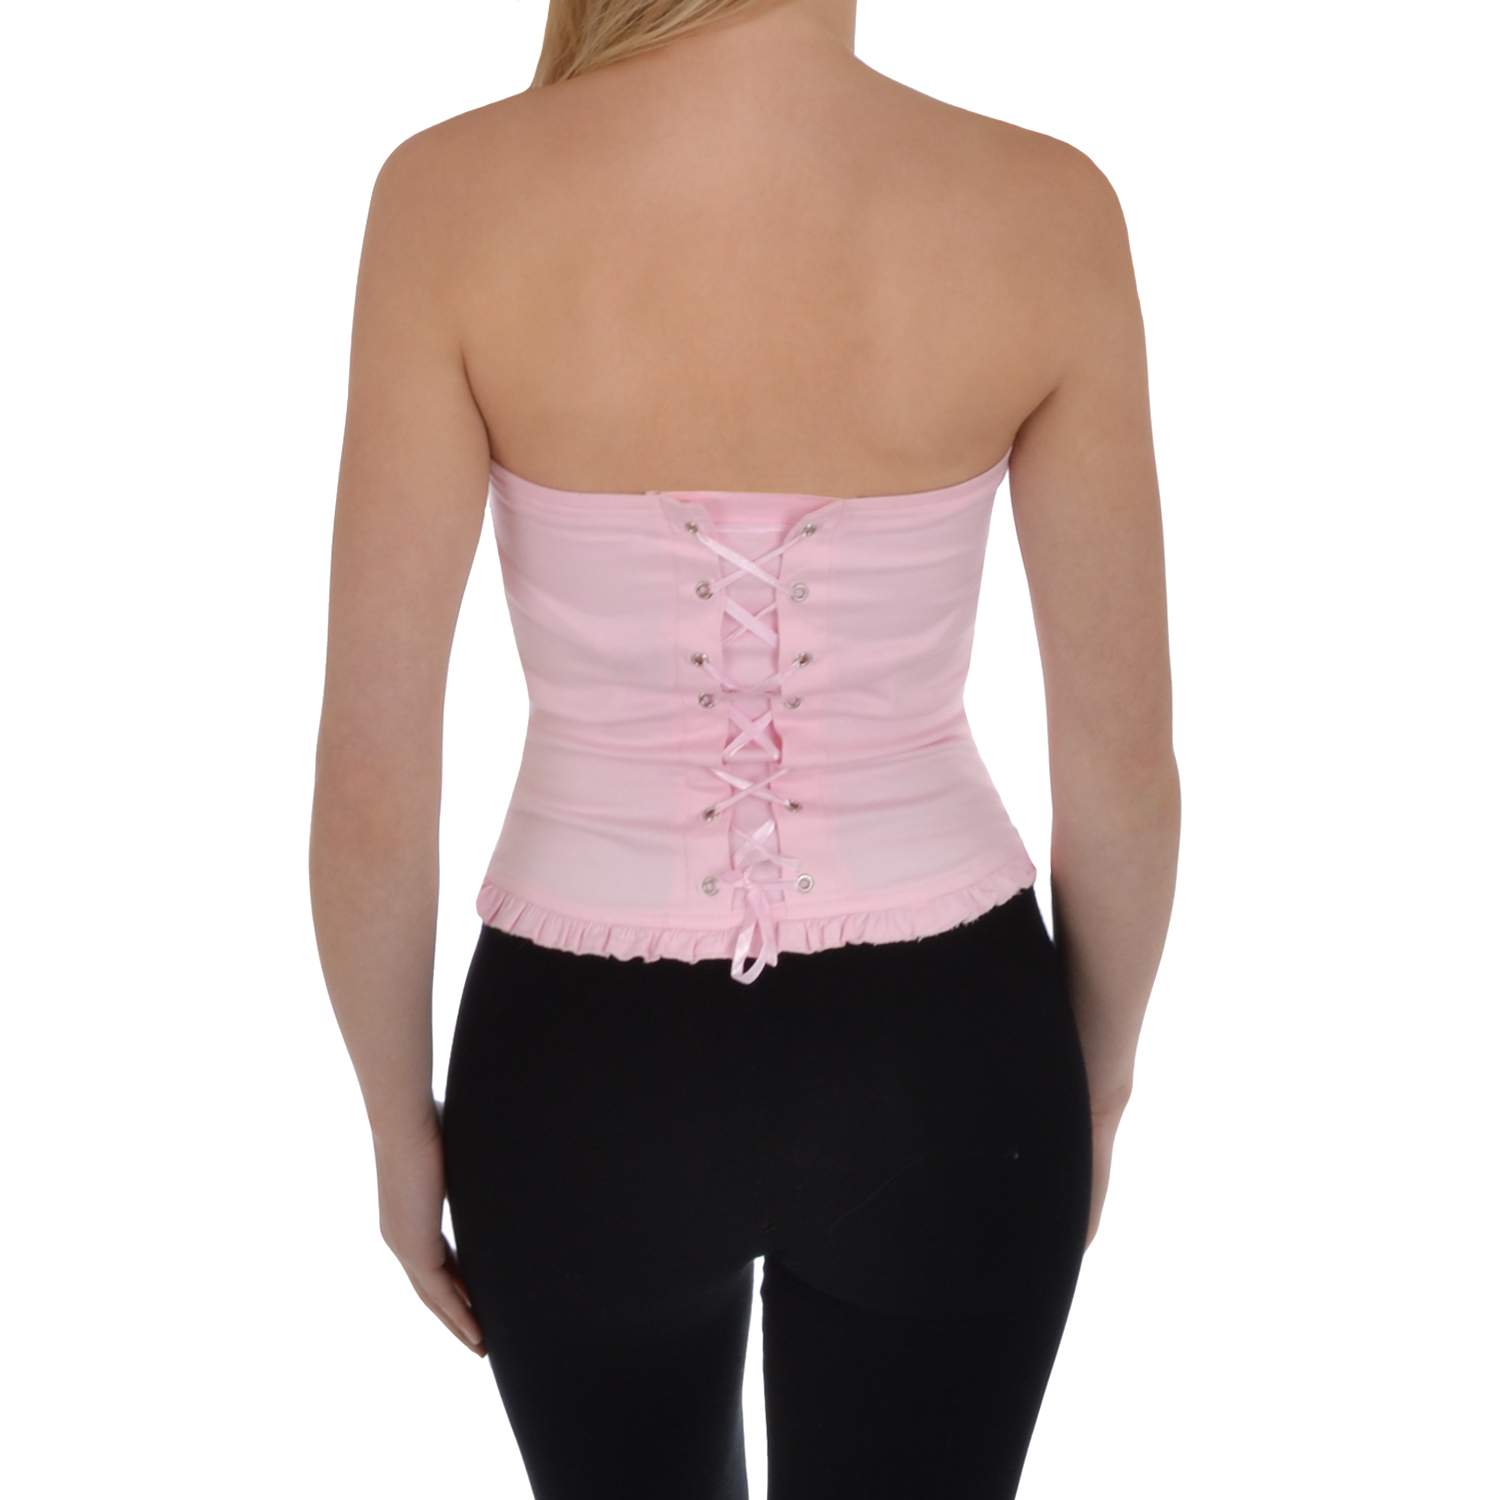 Miss Posh Womens Cotton Overbust Lace Up Boned Bustier Basque Corset Top